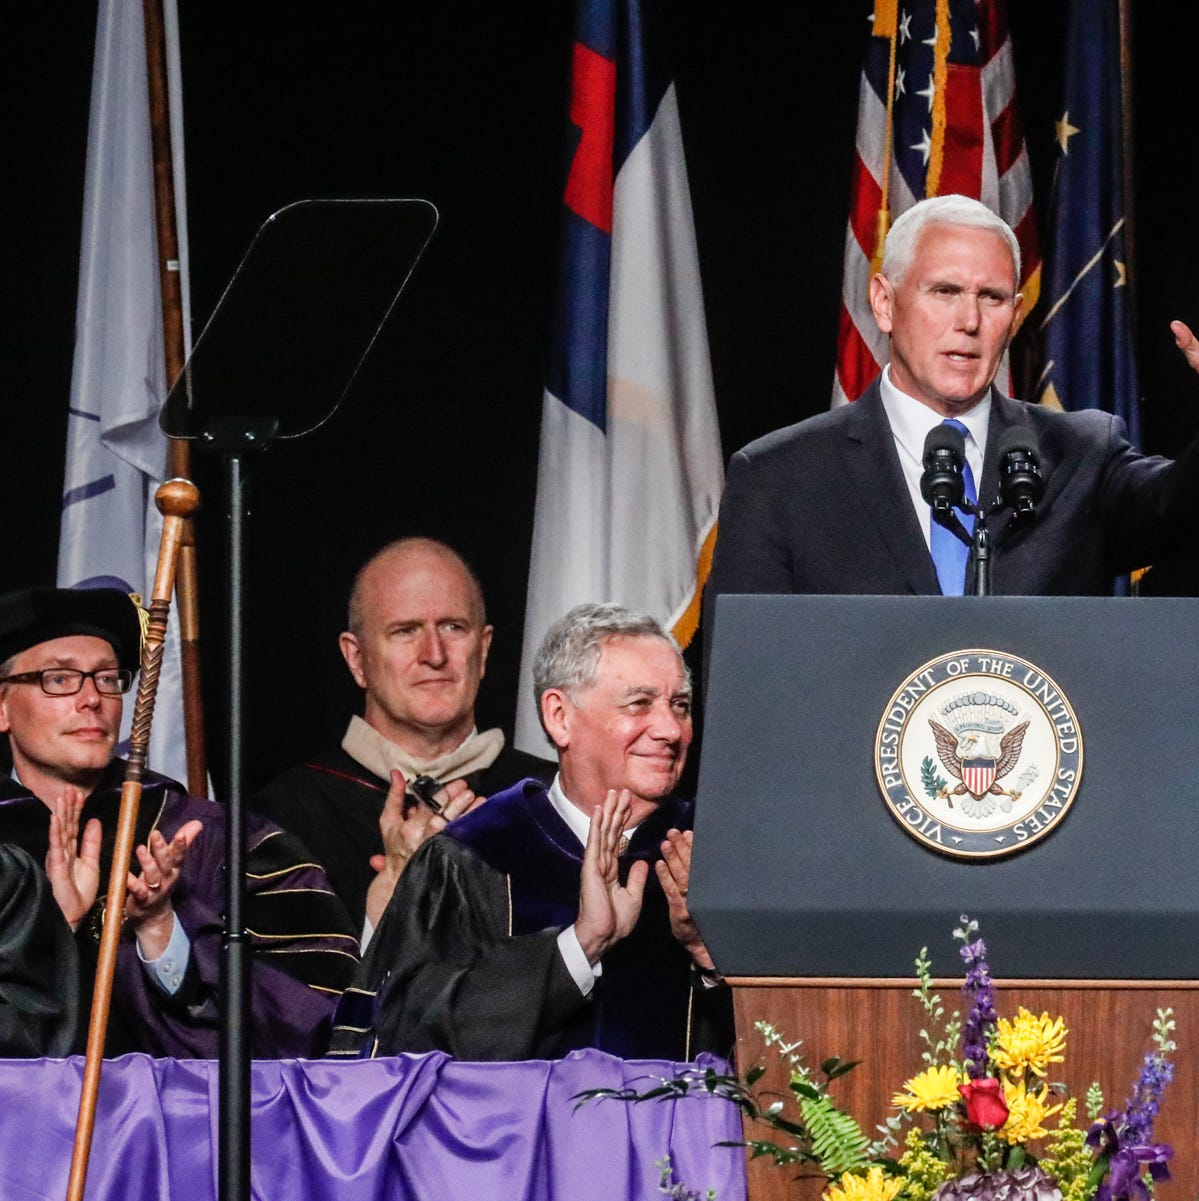 Read Mike Pence's remarks at Taylor University's commencement ceremony